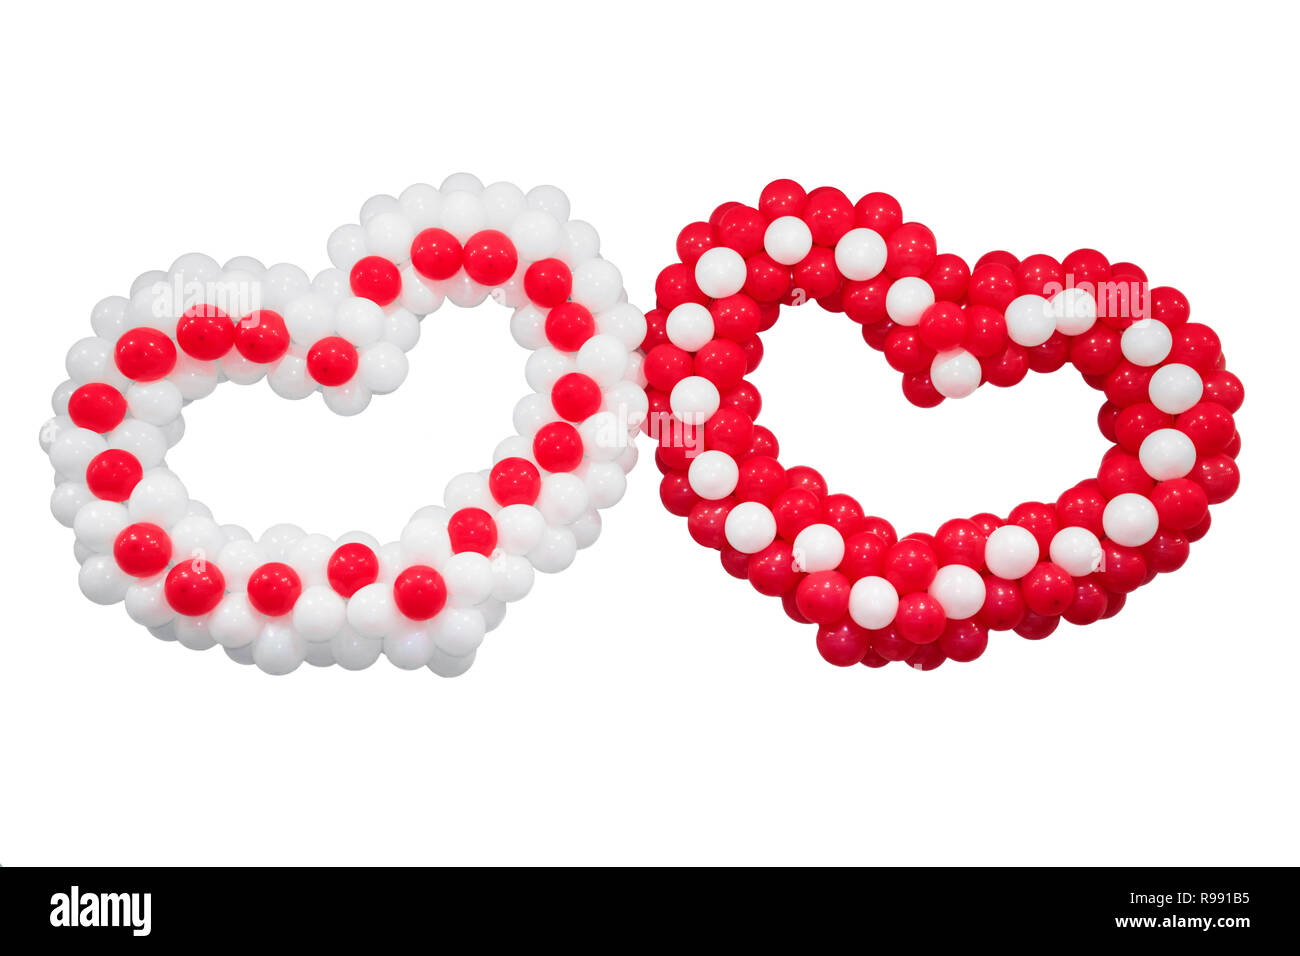 Two hearts Isolated on white background. Valentine's day and wedding concept. - Stock Image